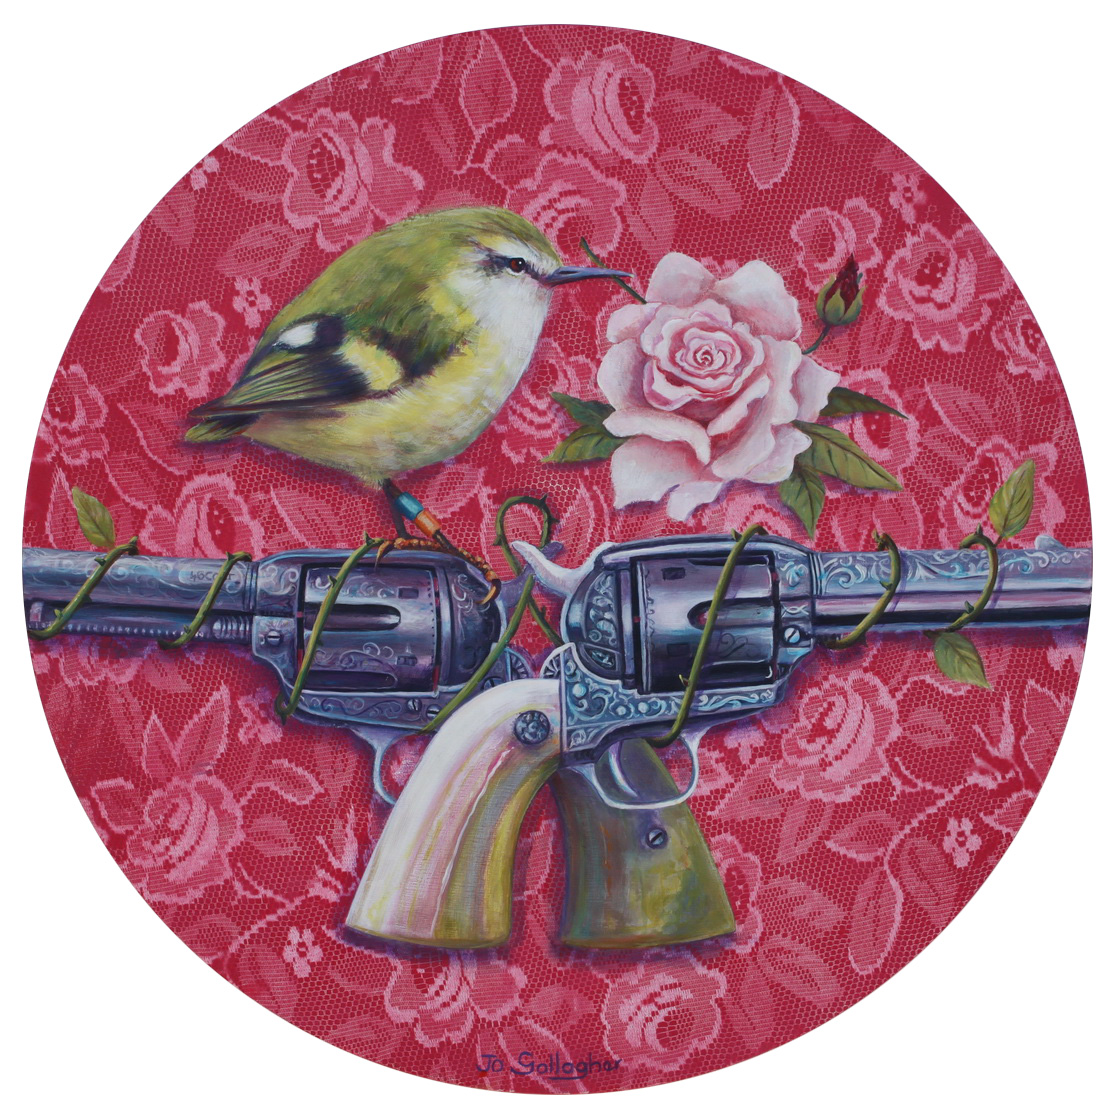 The Rifleman...guns n roses  500mm acrylic on plywood framed board SOLD